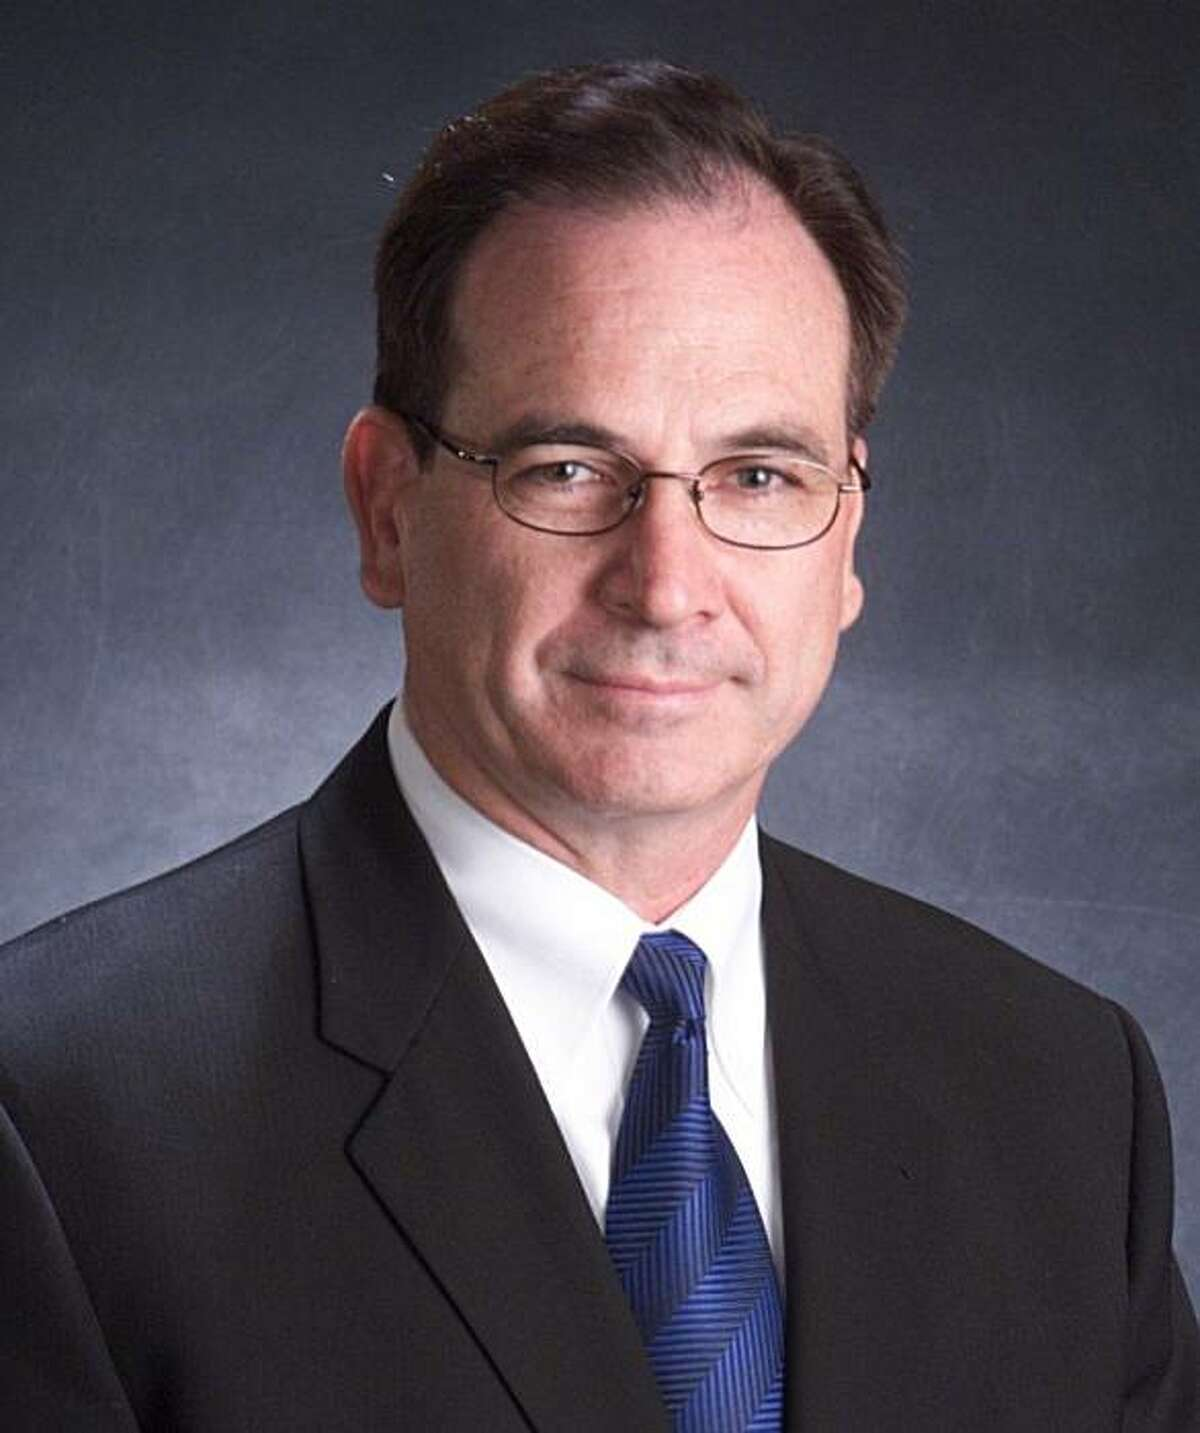 Bob Huff, part of an online chat series sponsored by Insight